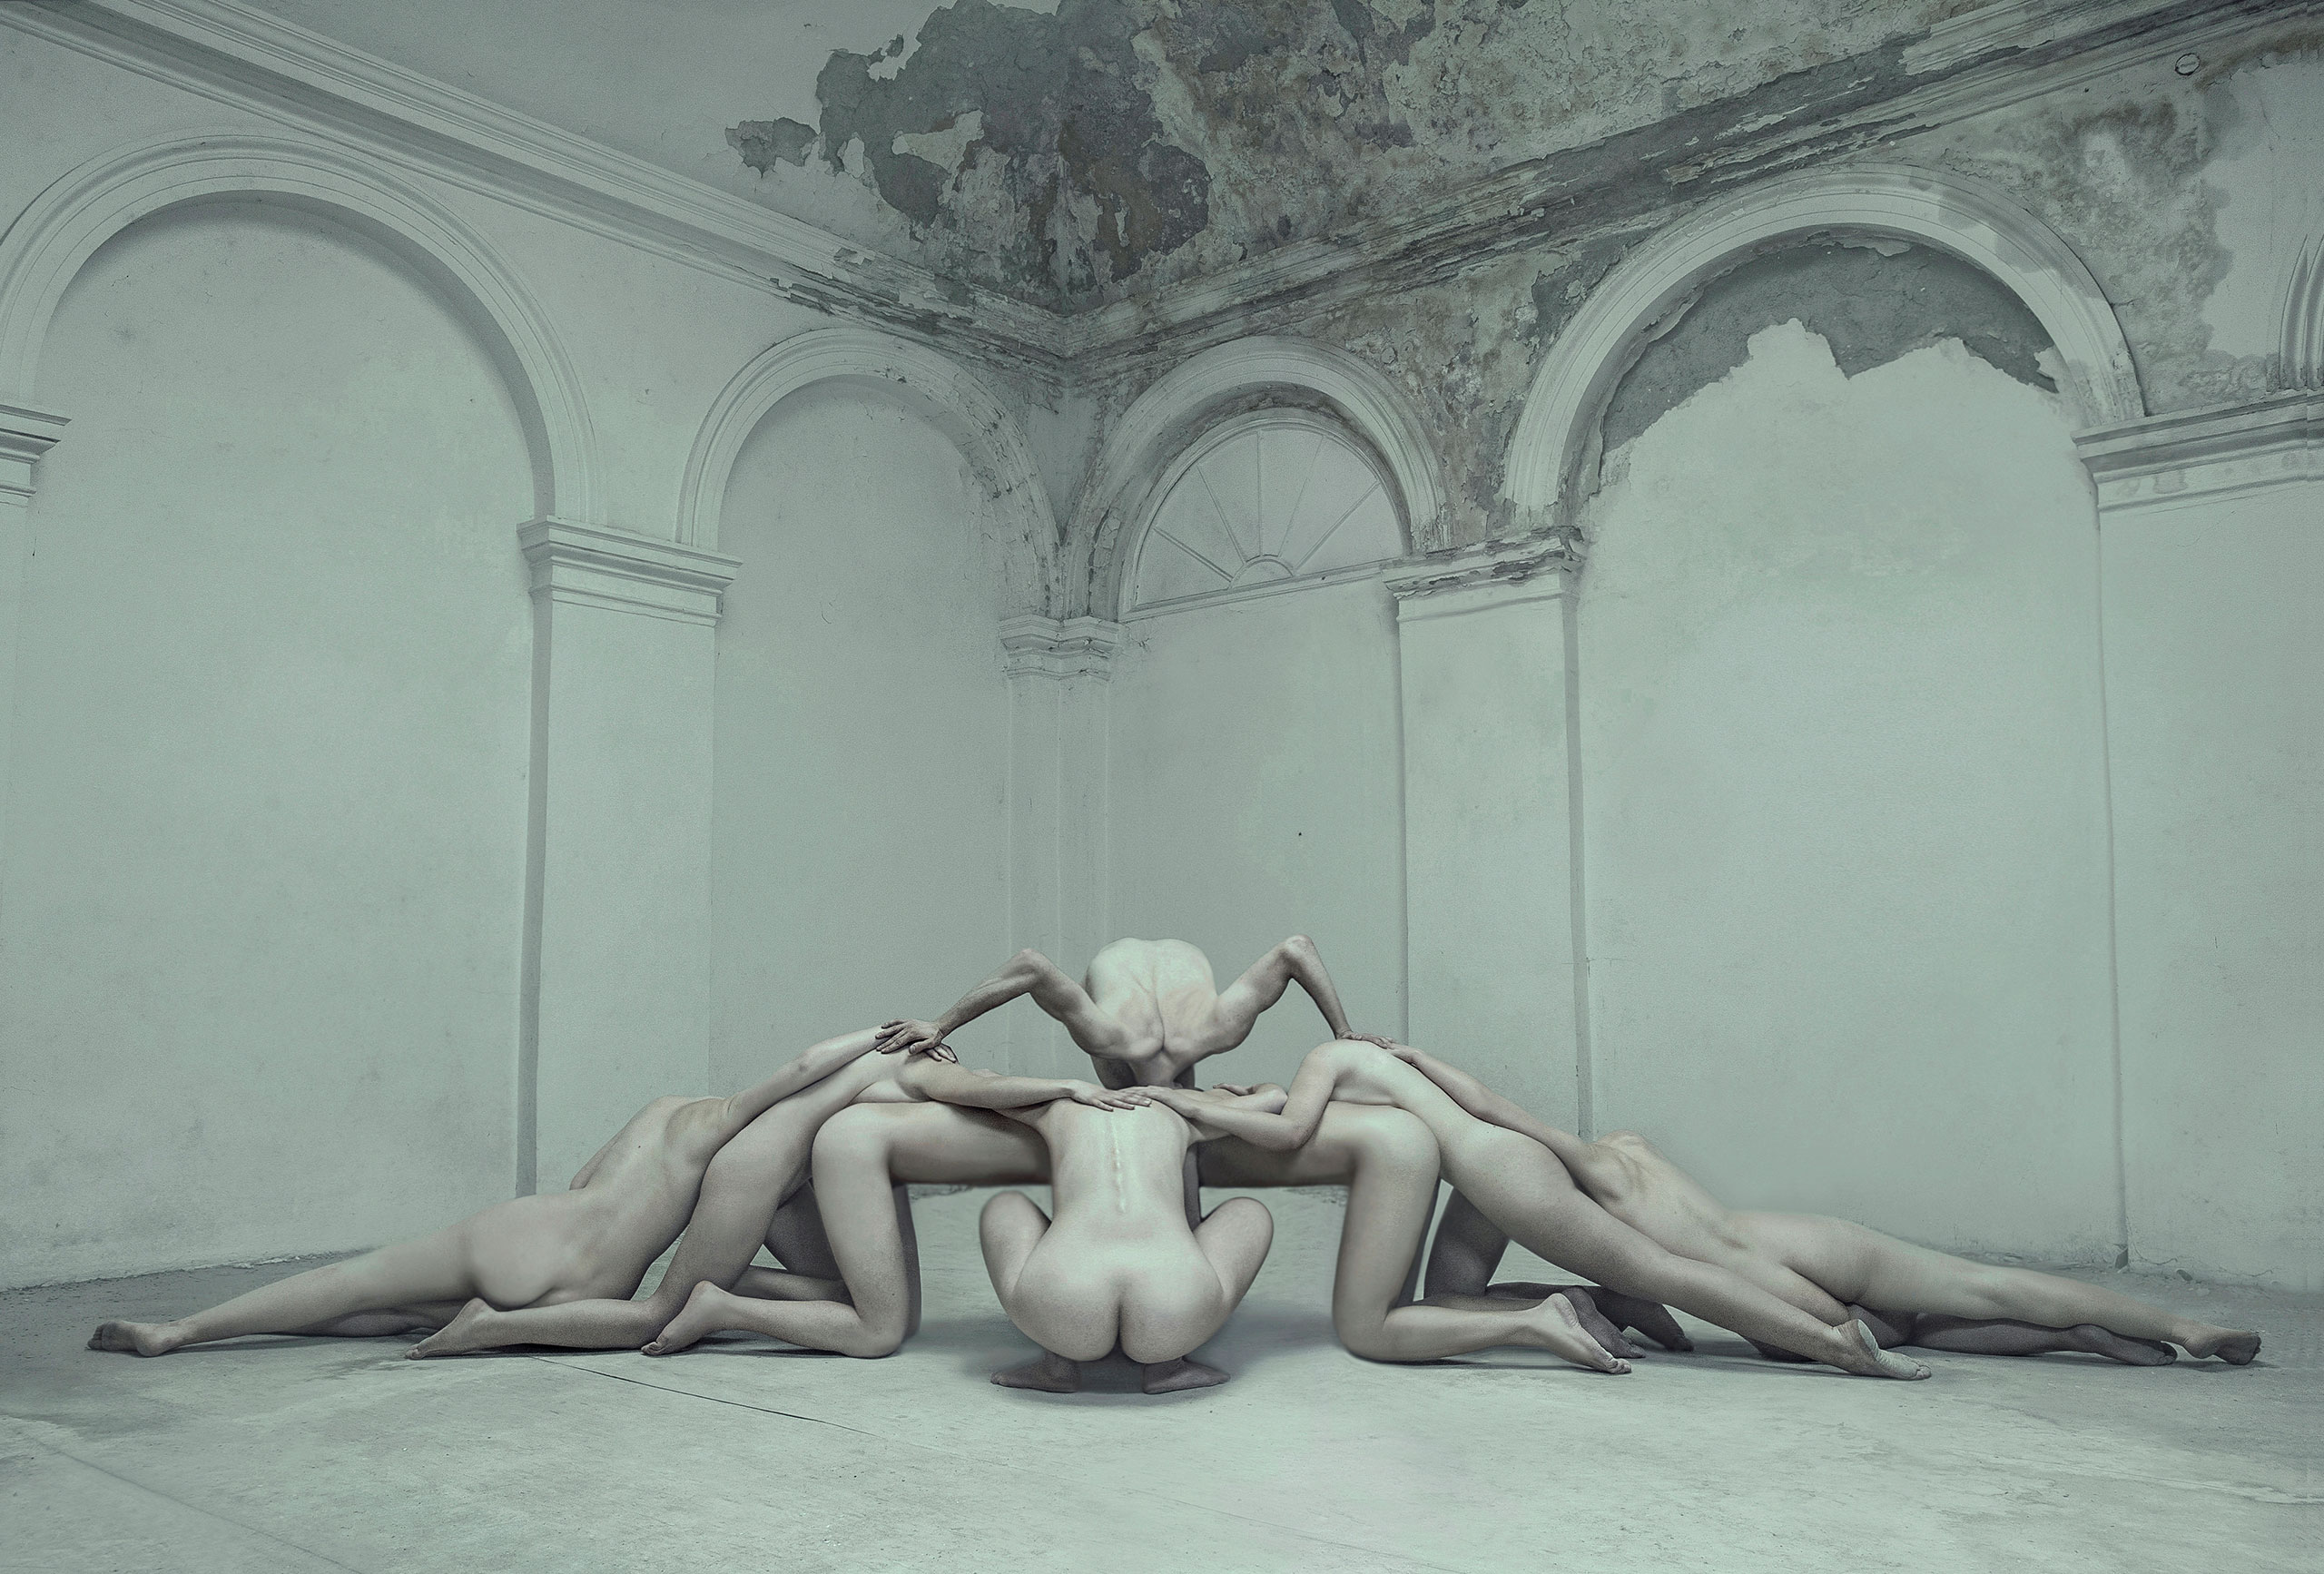 'Ecce Homo' Photographic Series by Evelyn Bencicova, photo © Evelyn Bencicova.